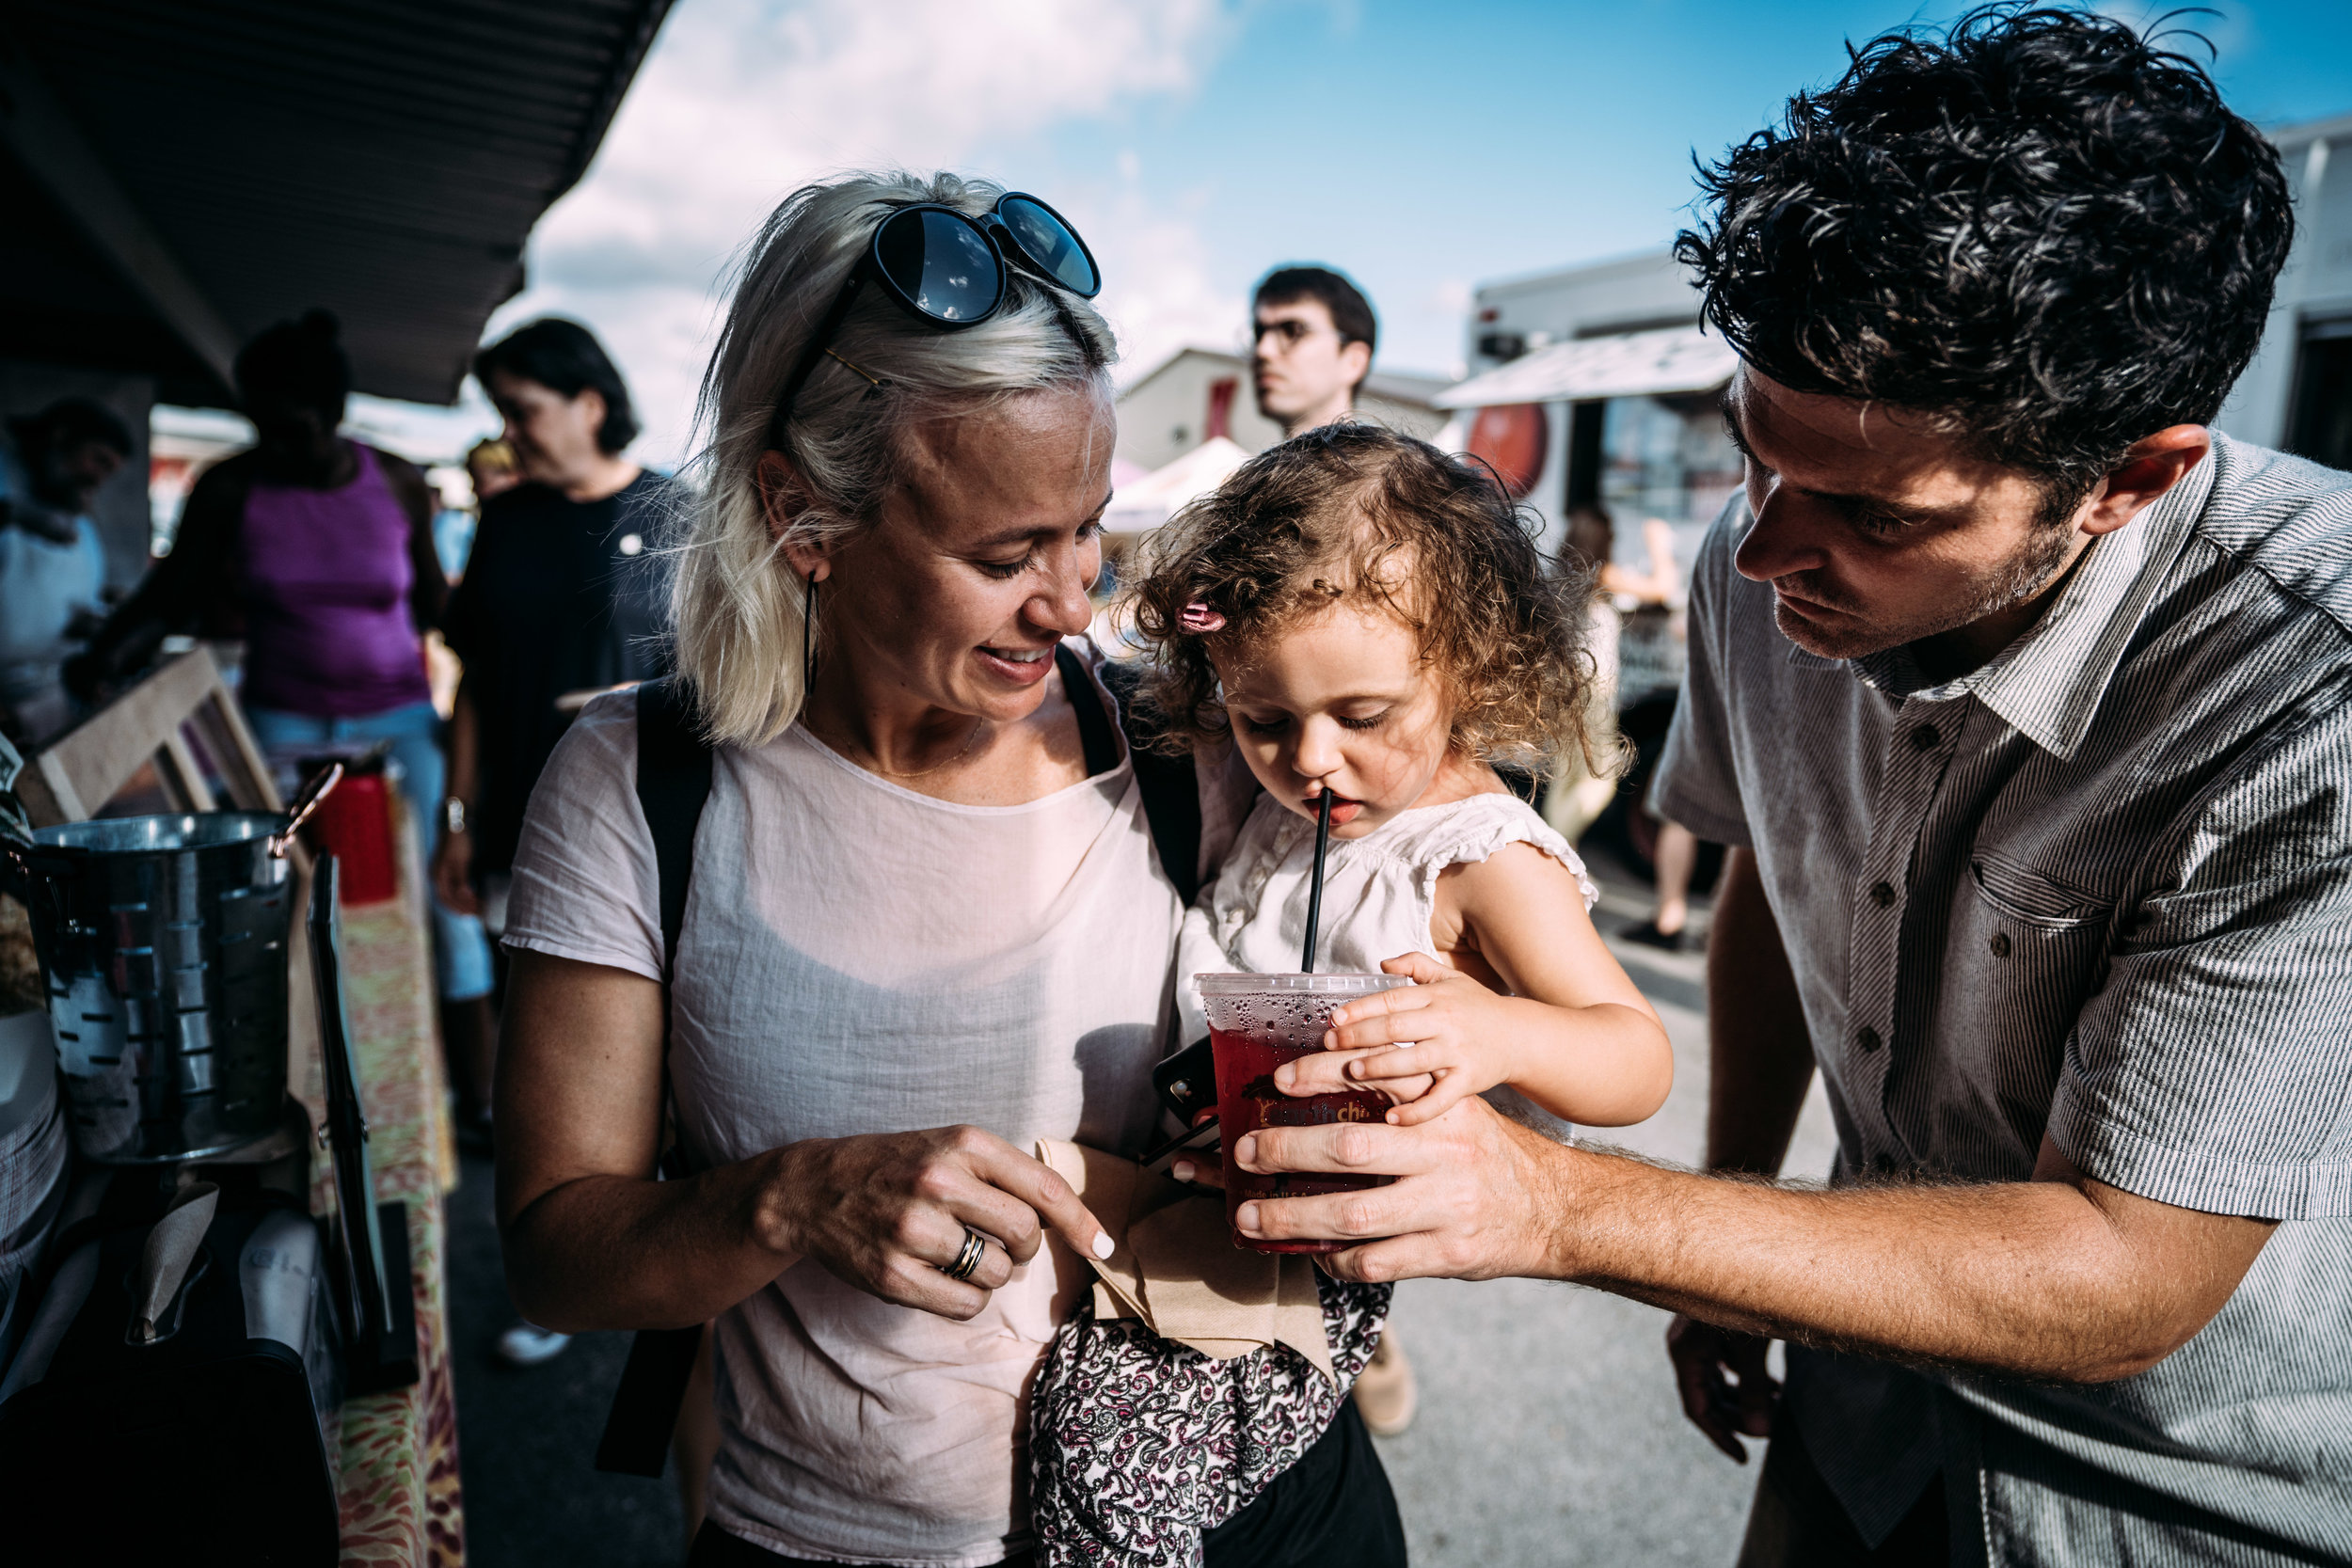 Dad gives little girl a drink while mom holds her